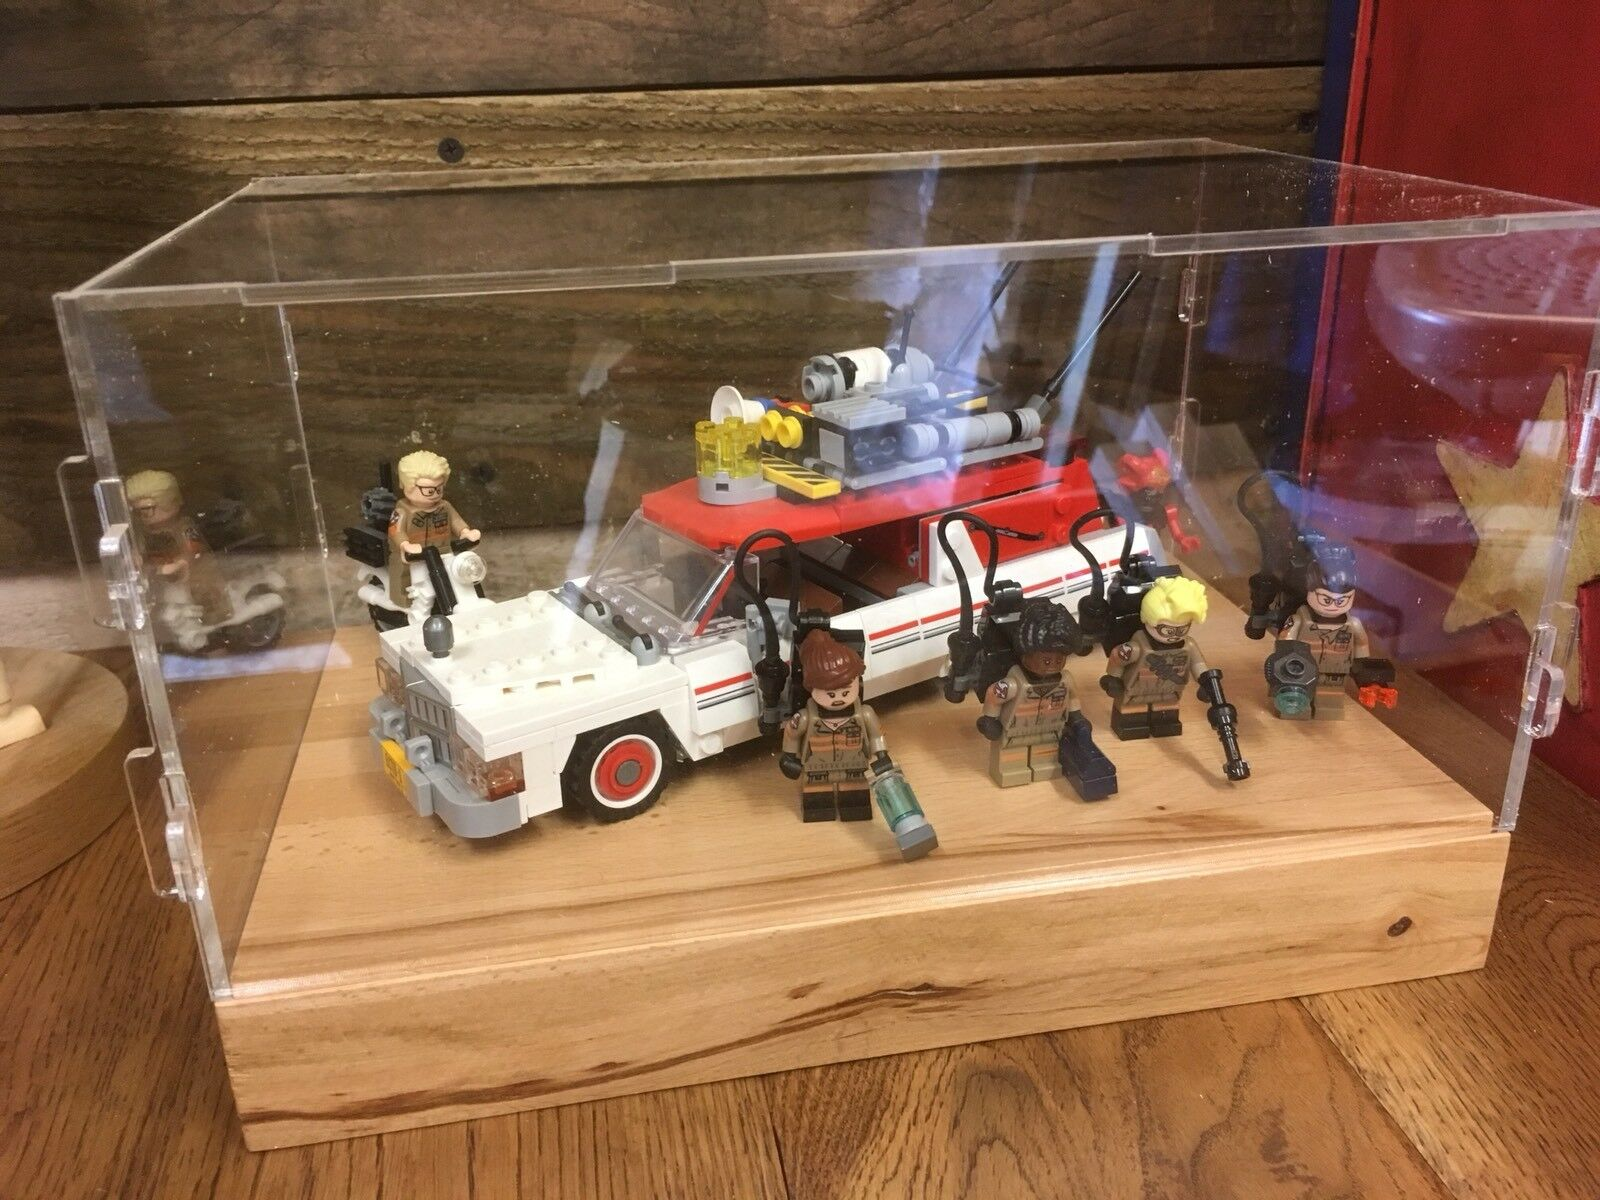 Deluxe Hardwood & Clear Acrylic Display Case for LEGO Ghostbusters 2 Echto 1